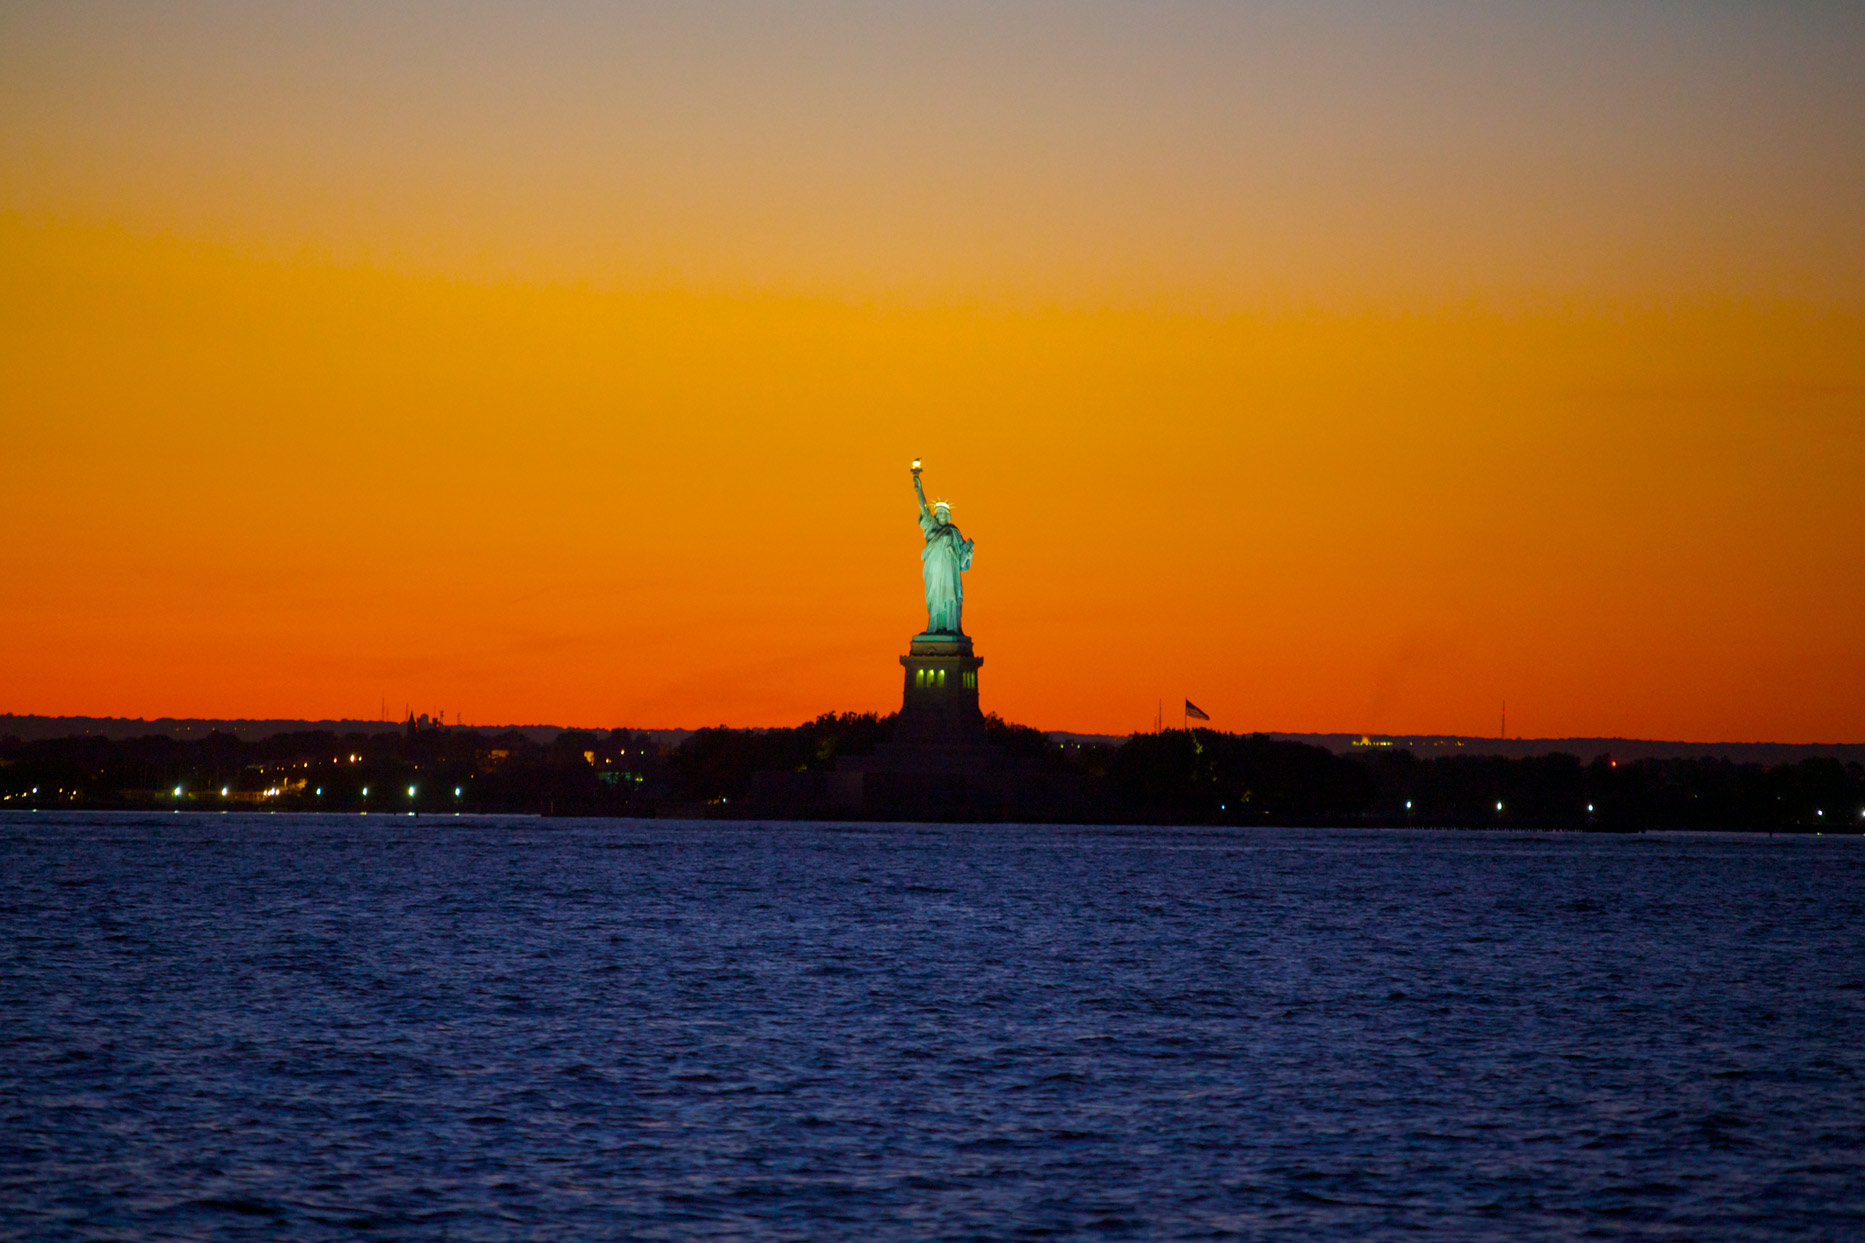 The Statue of Liberty in late sunset .jpg